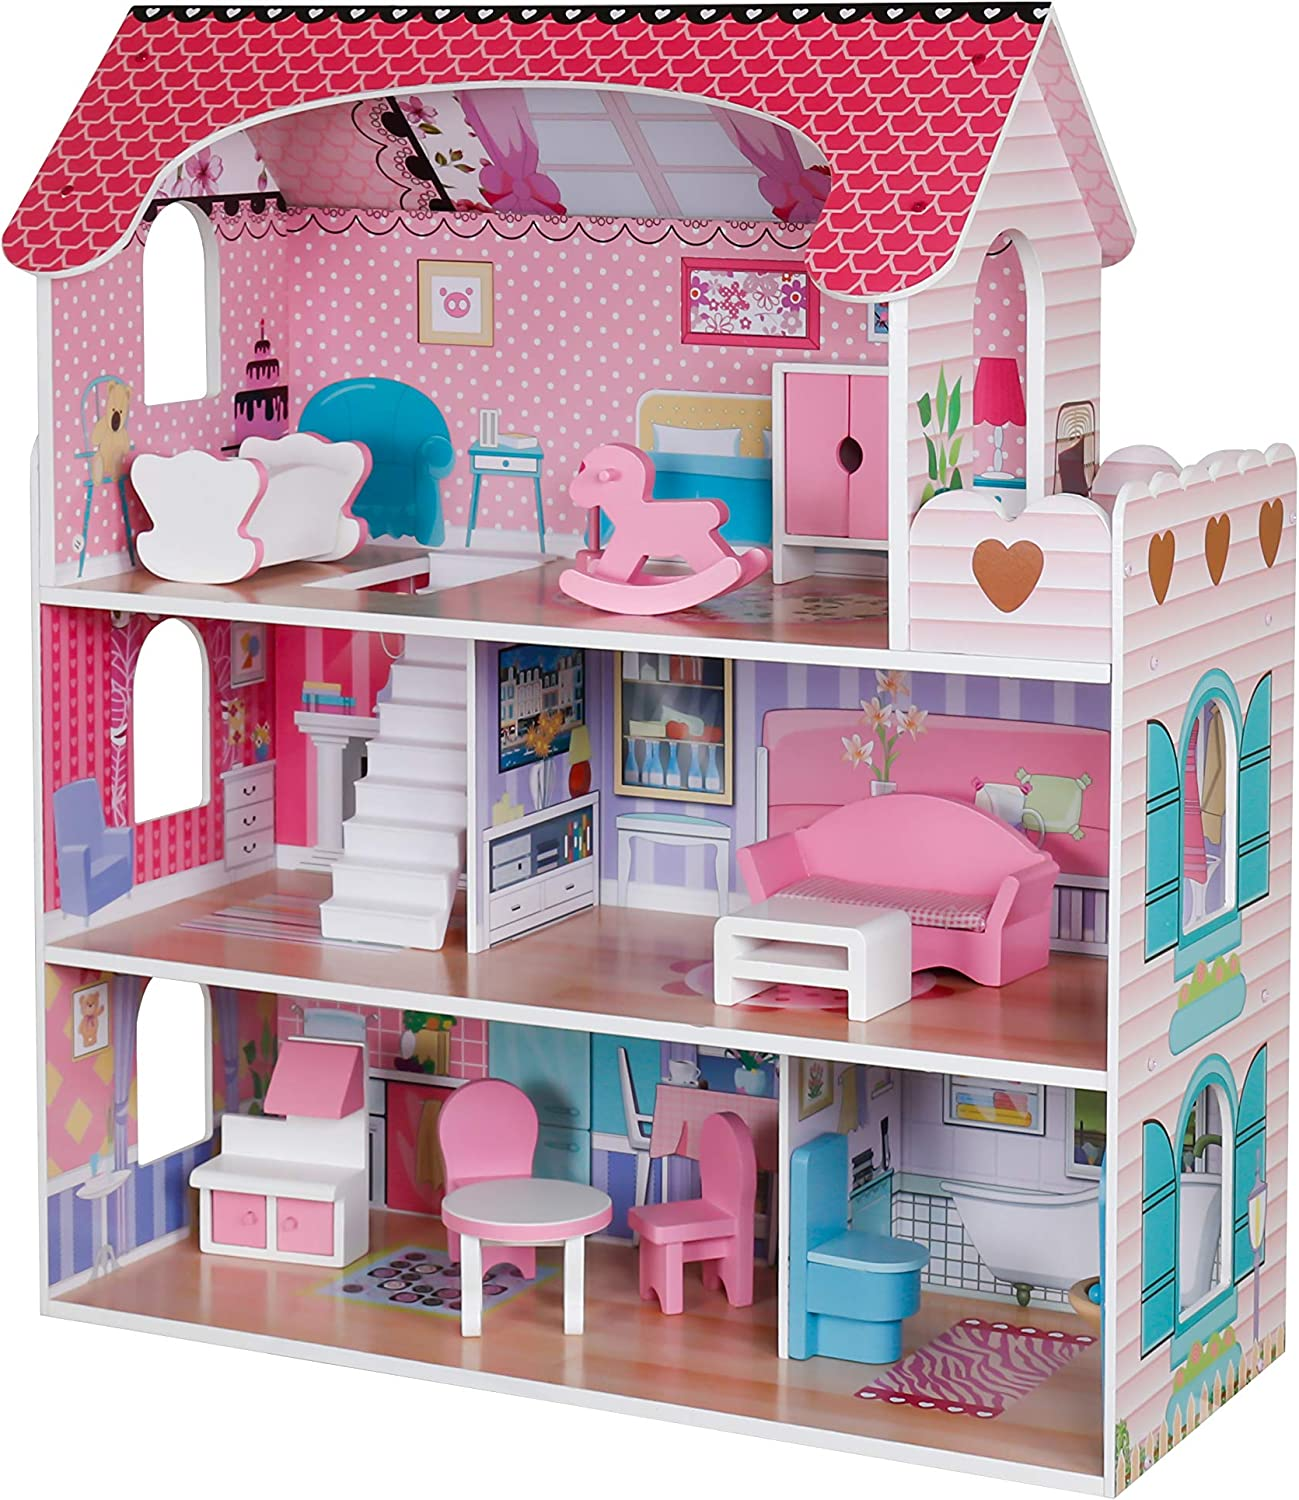 Pidoko Kids Wooden Dollhouse - Includes 12 Pcs Furniture Accessories